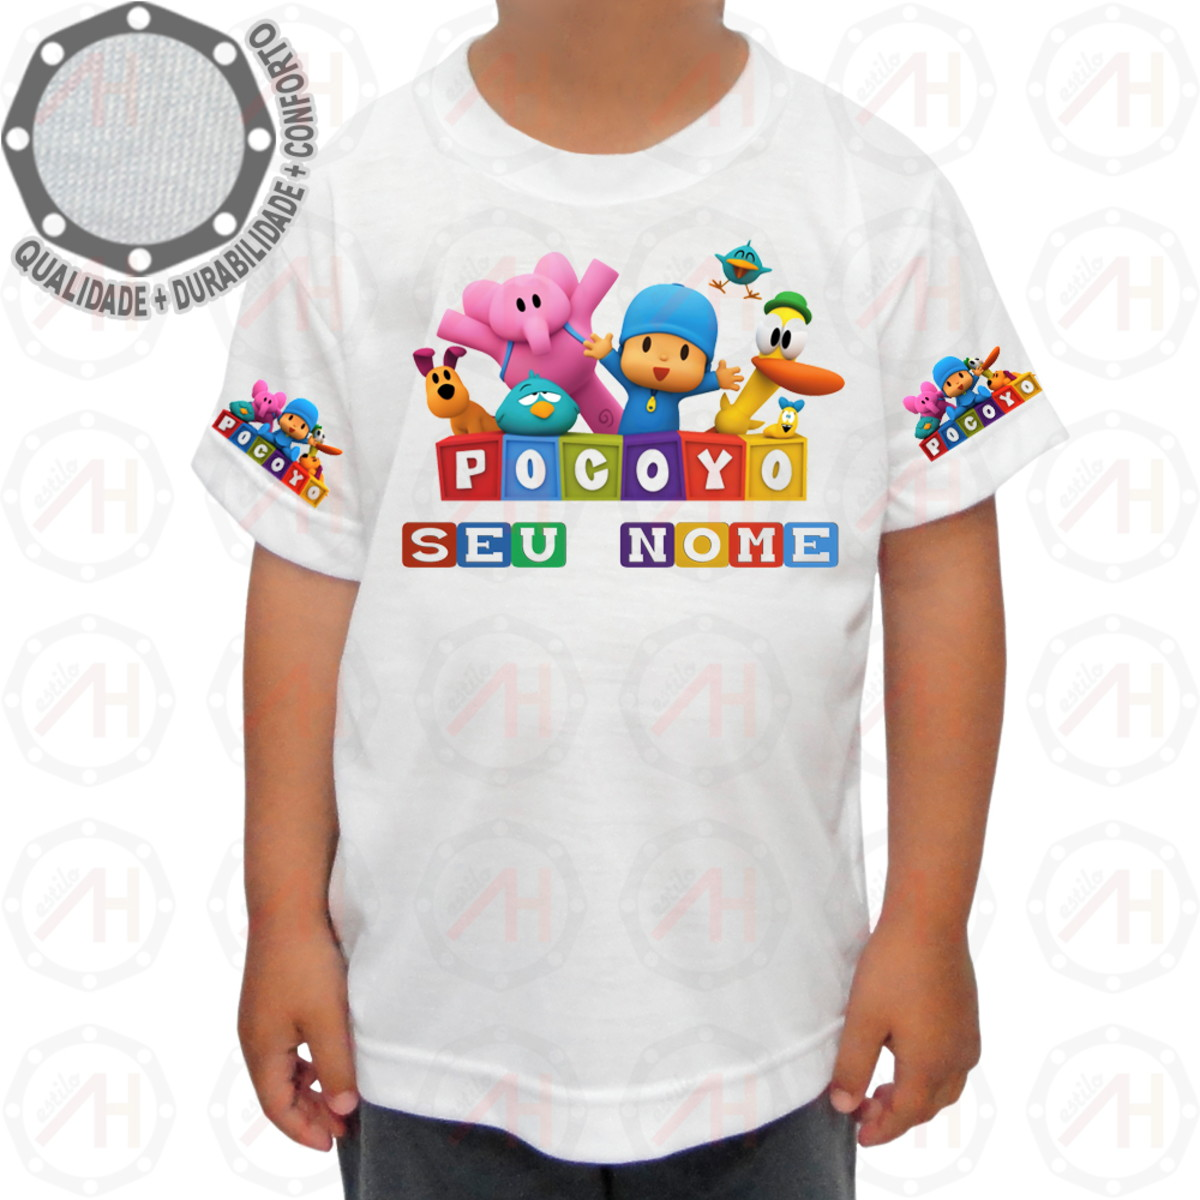 Camiseta Pocoyo Personagens Pose no Elo7  3cb7b8c1d6215